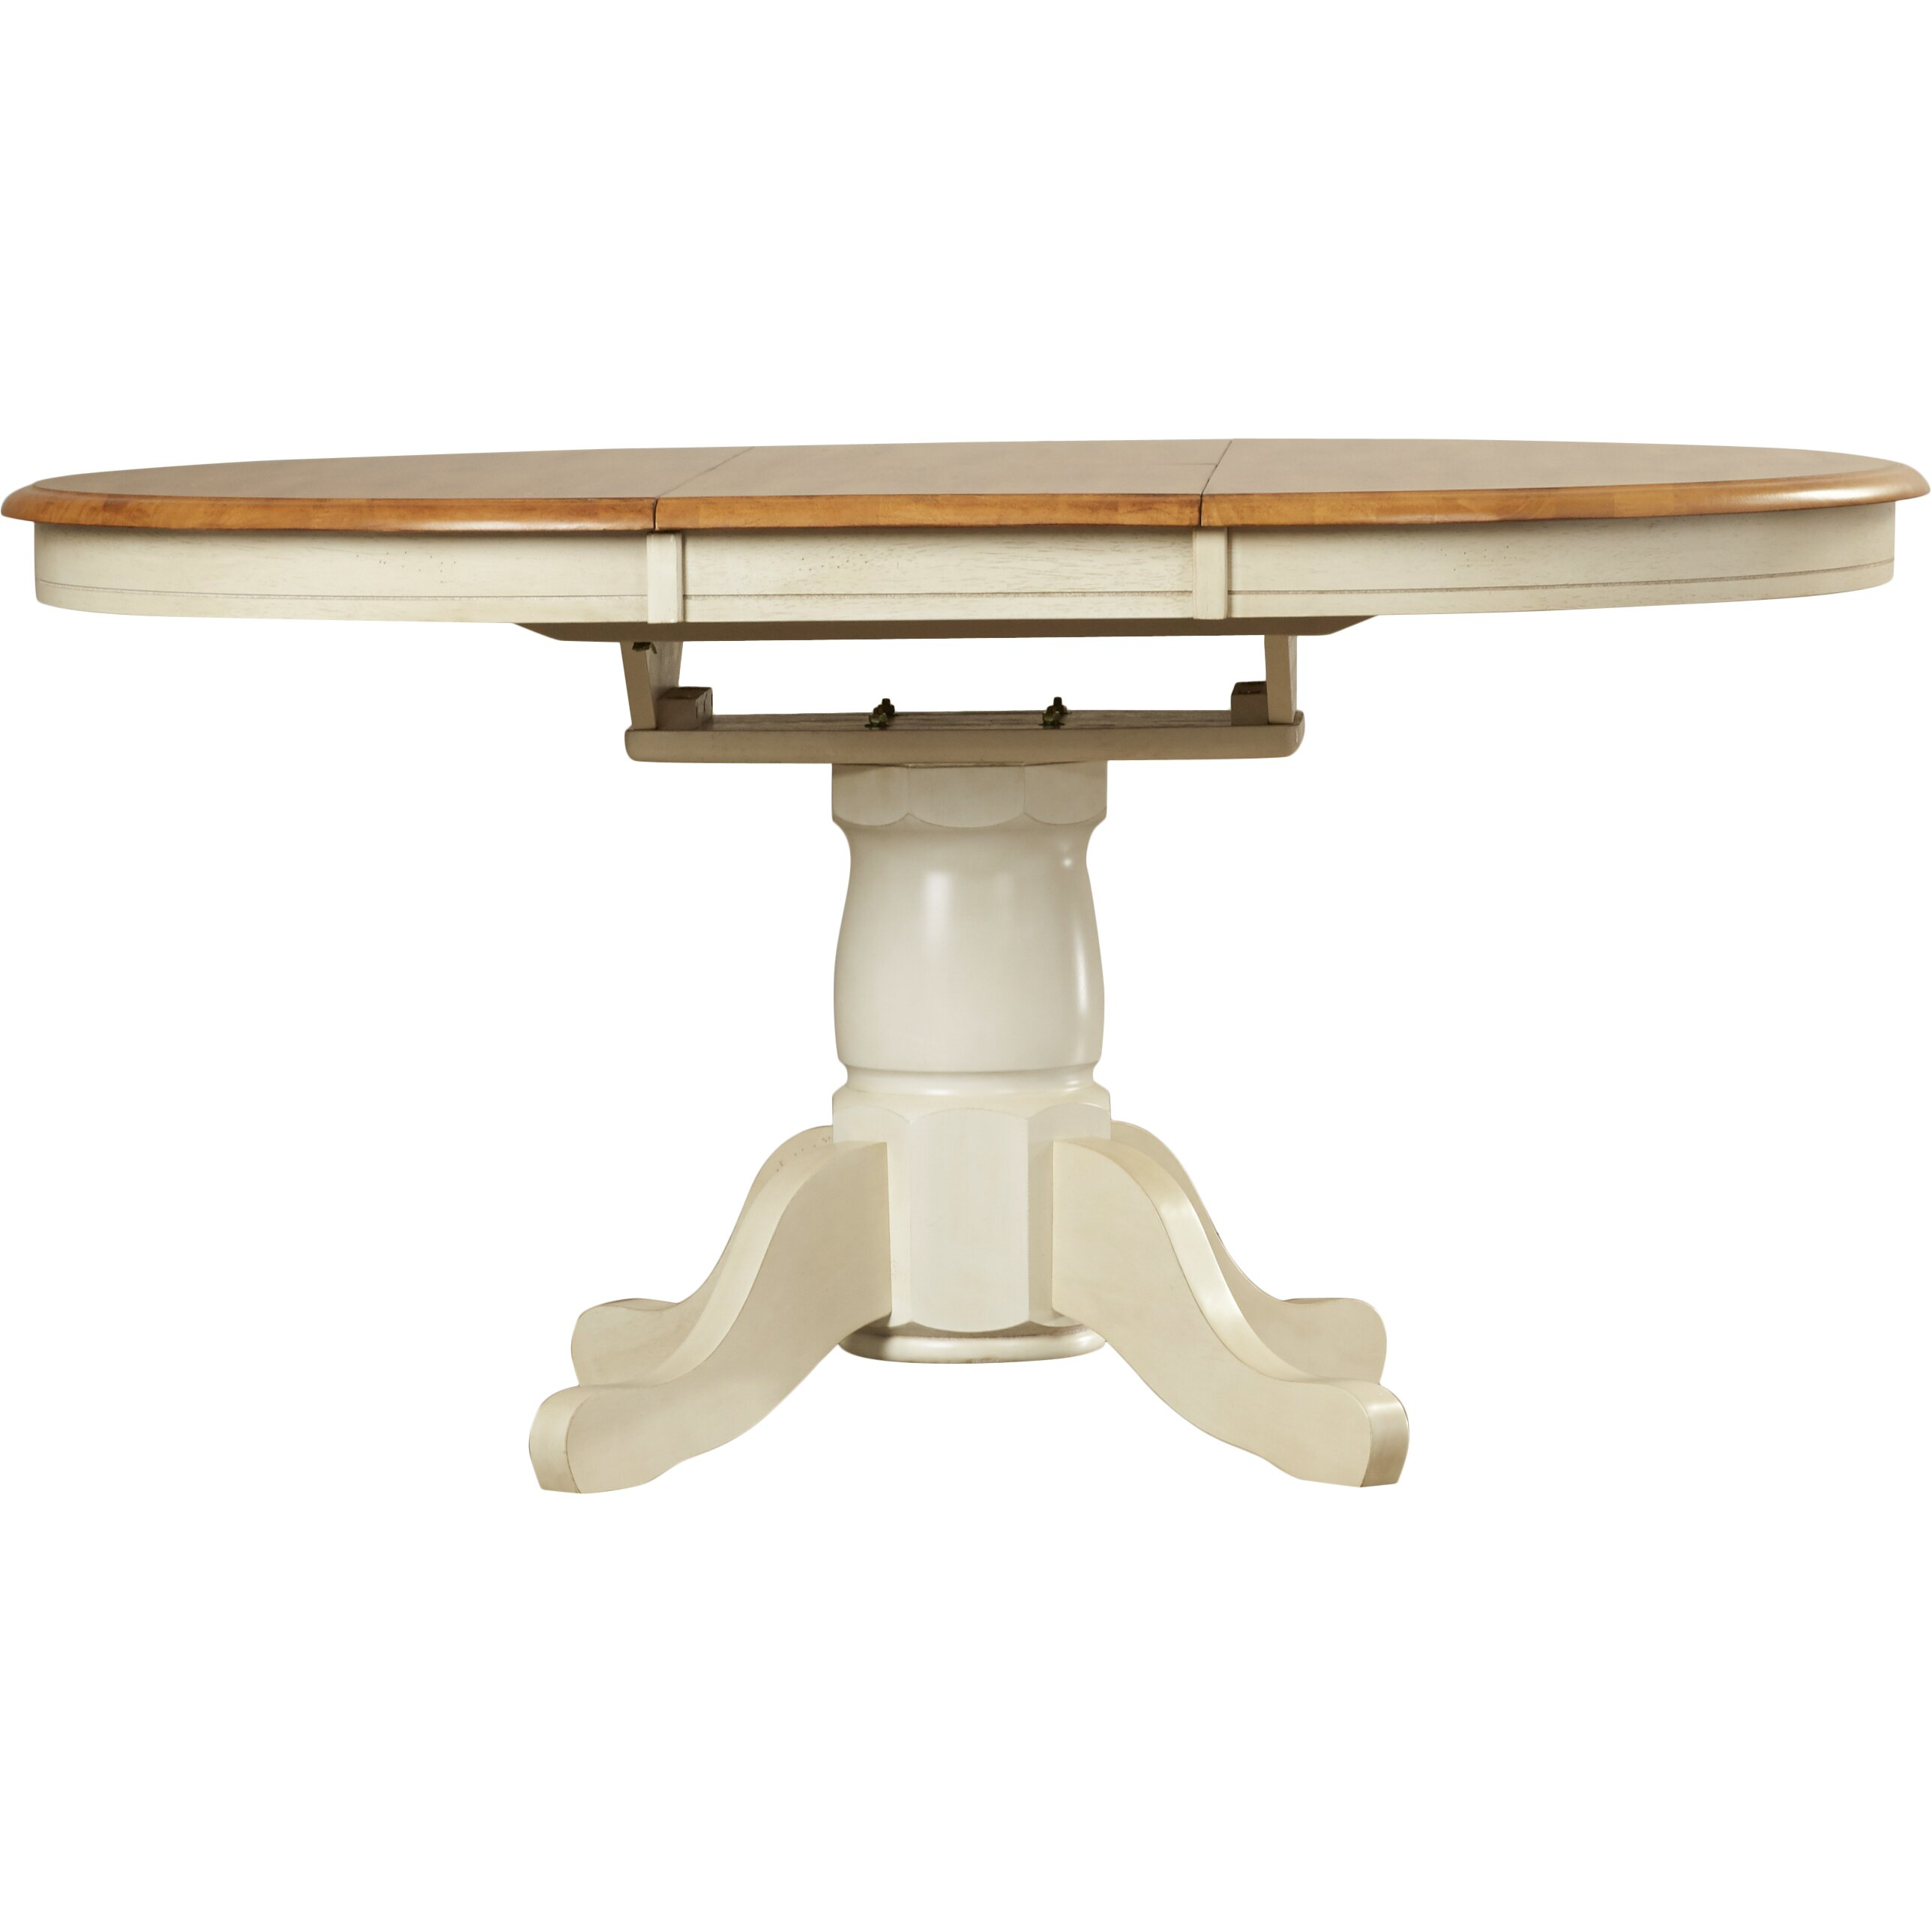 Loon Peak Wiggins Extendable Dining Table amp Reviews Wayfair : Wiggins Extendable Dining Table LOON2185 from www.wayfair.com size 2577 x 2577 jpeg 264kB